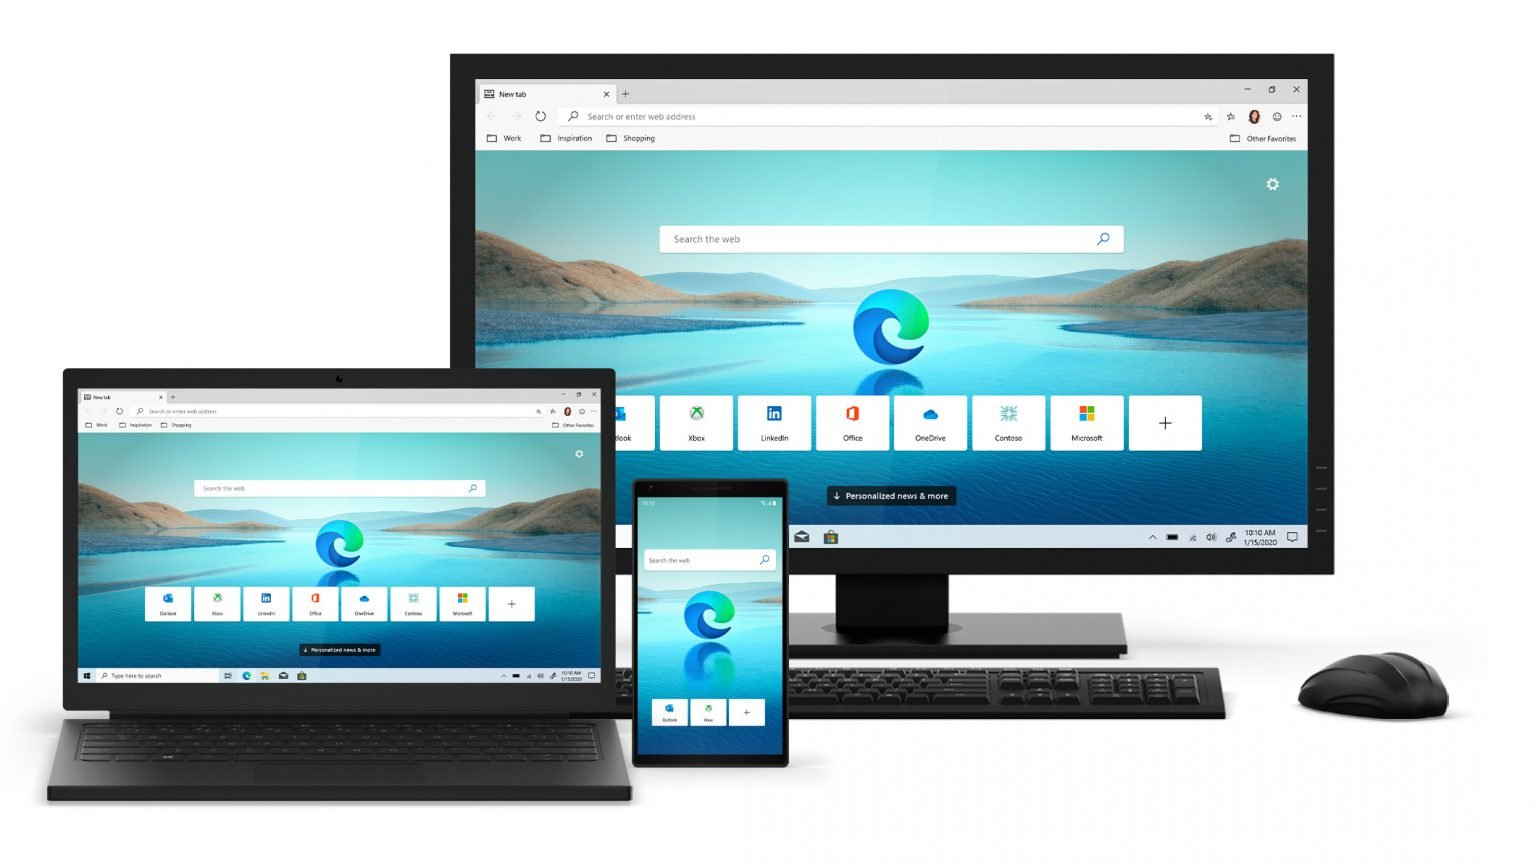 Introducing Microsoft Edge supporting Chromium kernel for iOS / macOS / Android